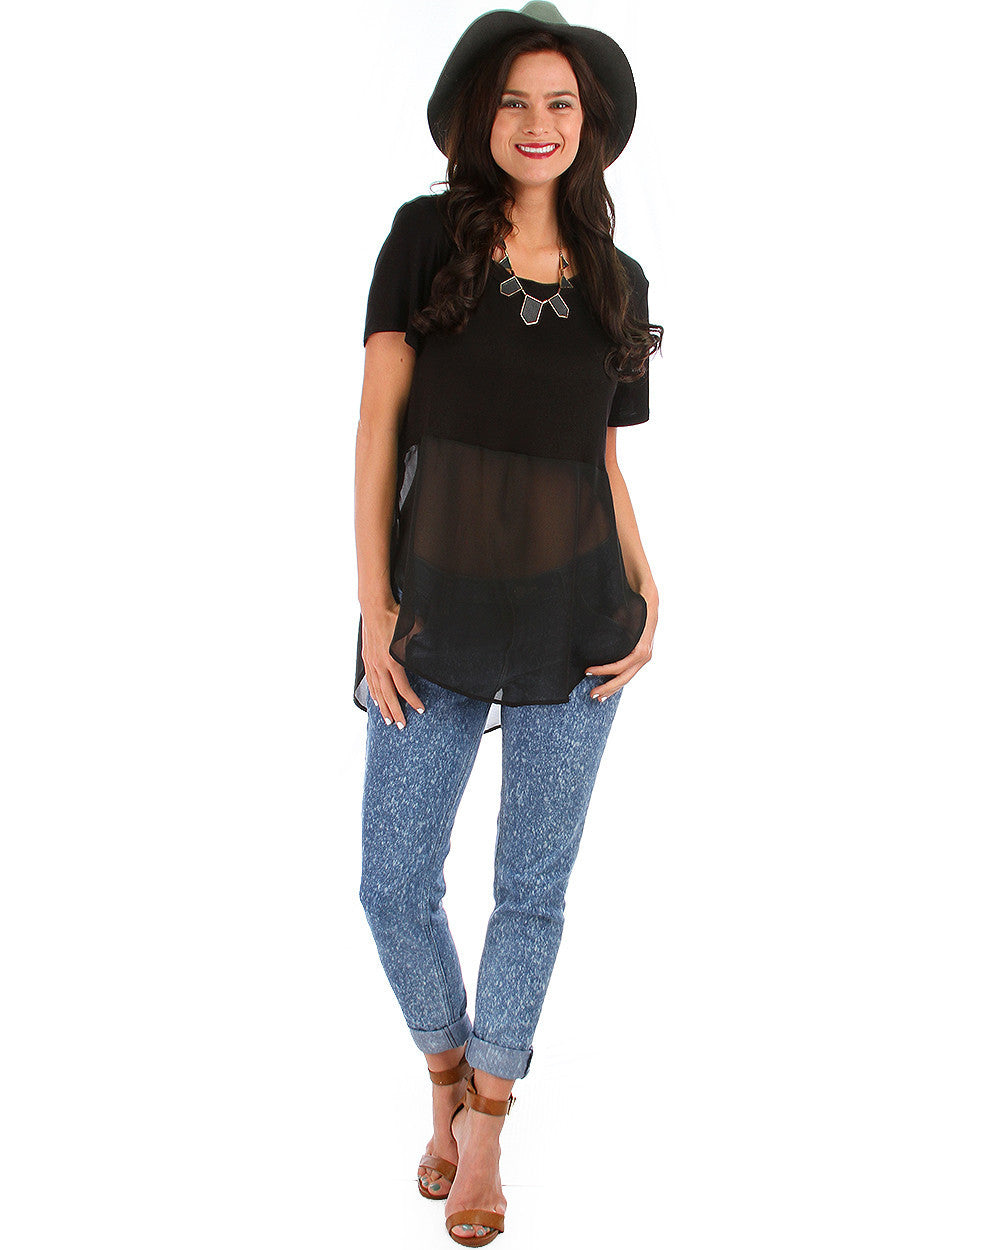 Half & Half Color Block Top In Black